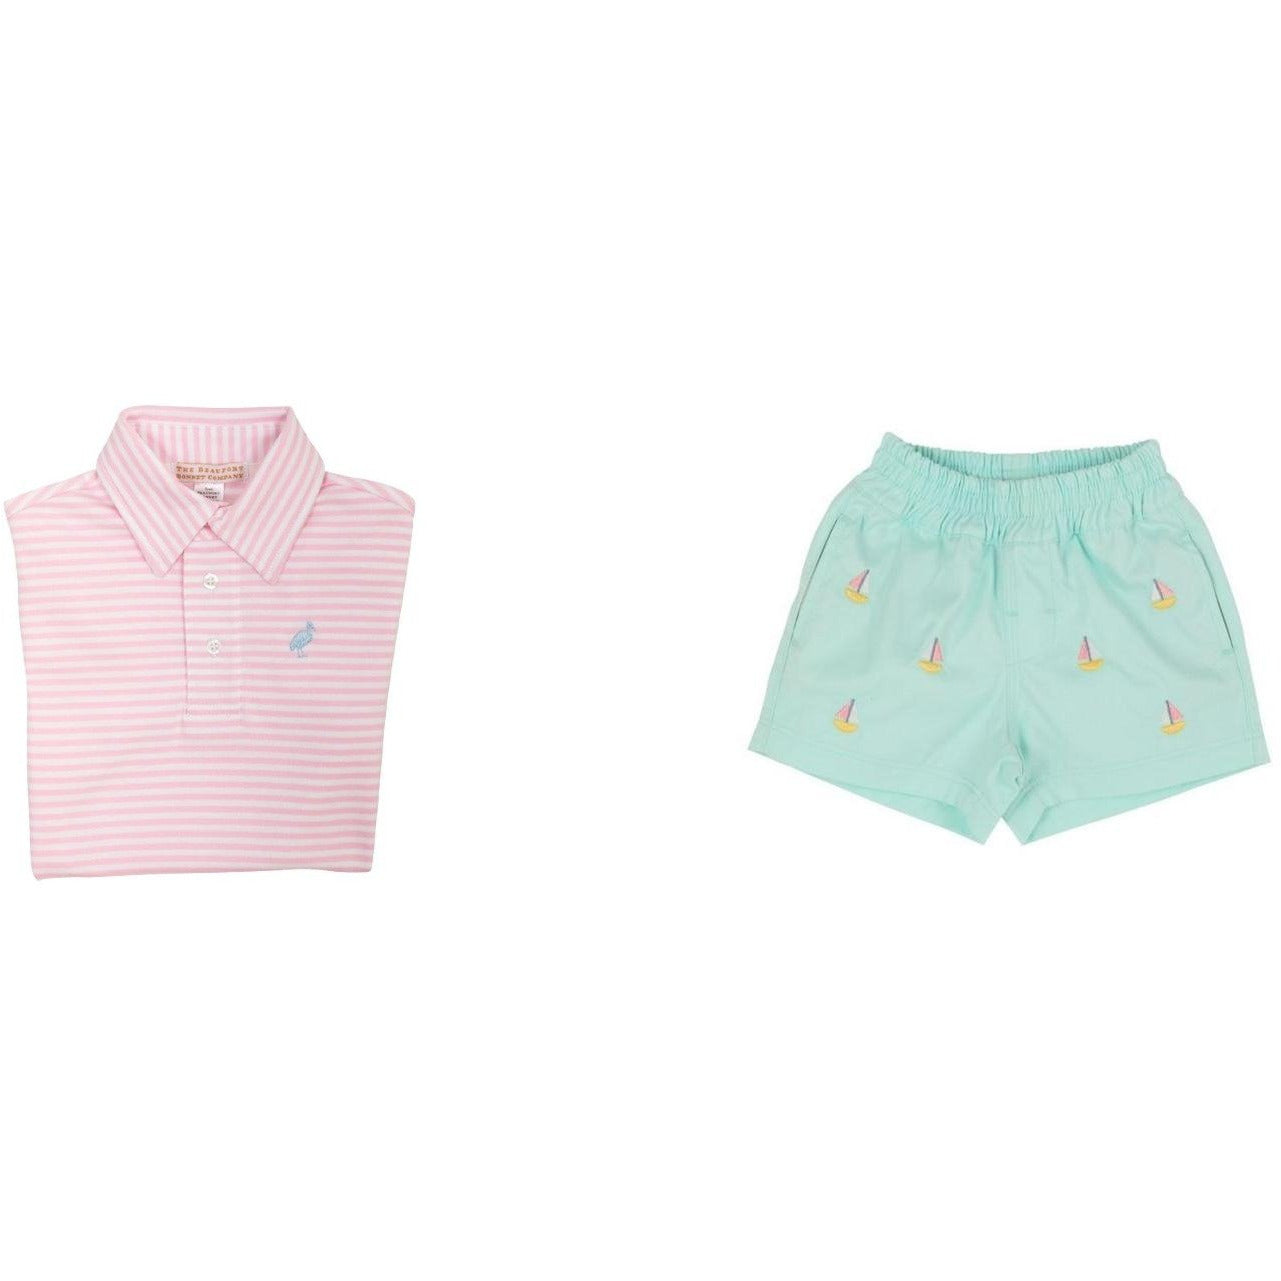 Critter Sheffield Shorts Sea Island Seafoam with Sailboat Embroidery & SS Pink Stripe  Polo